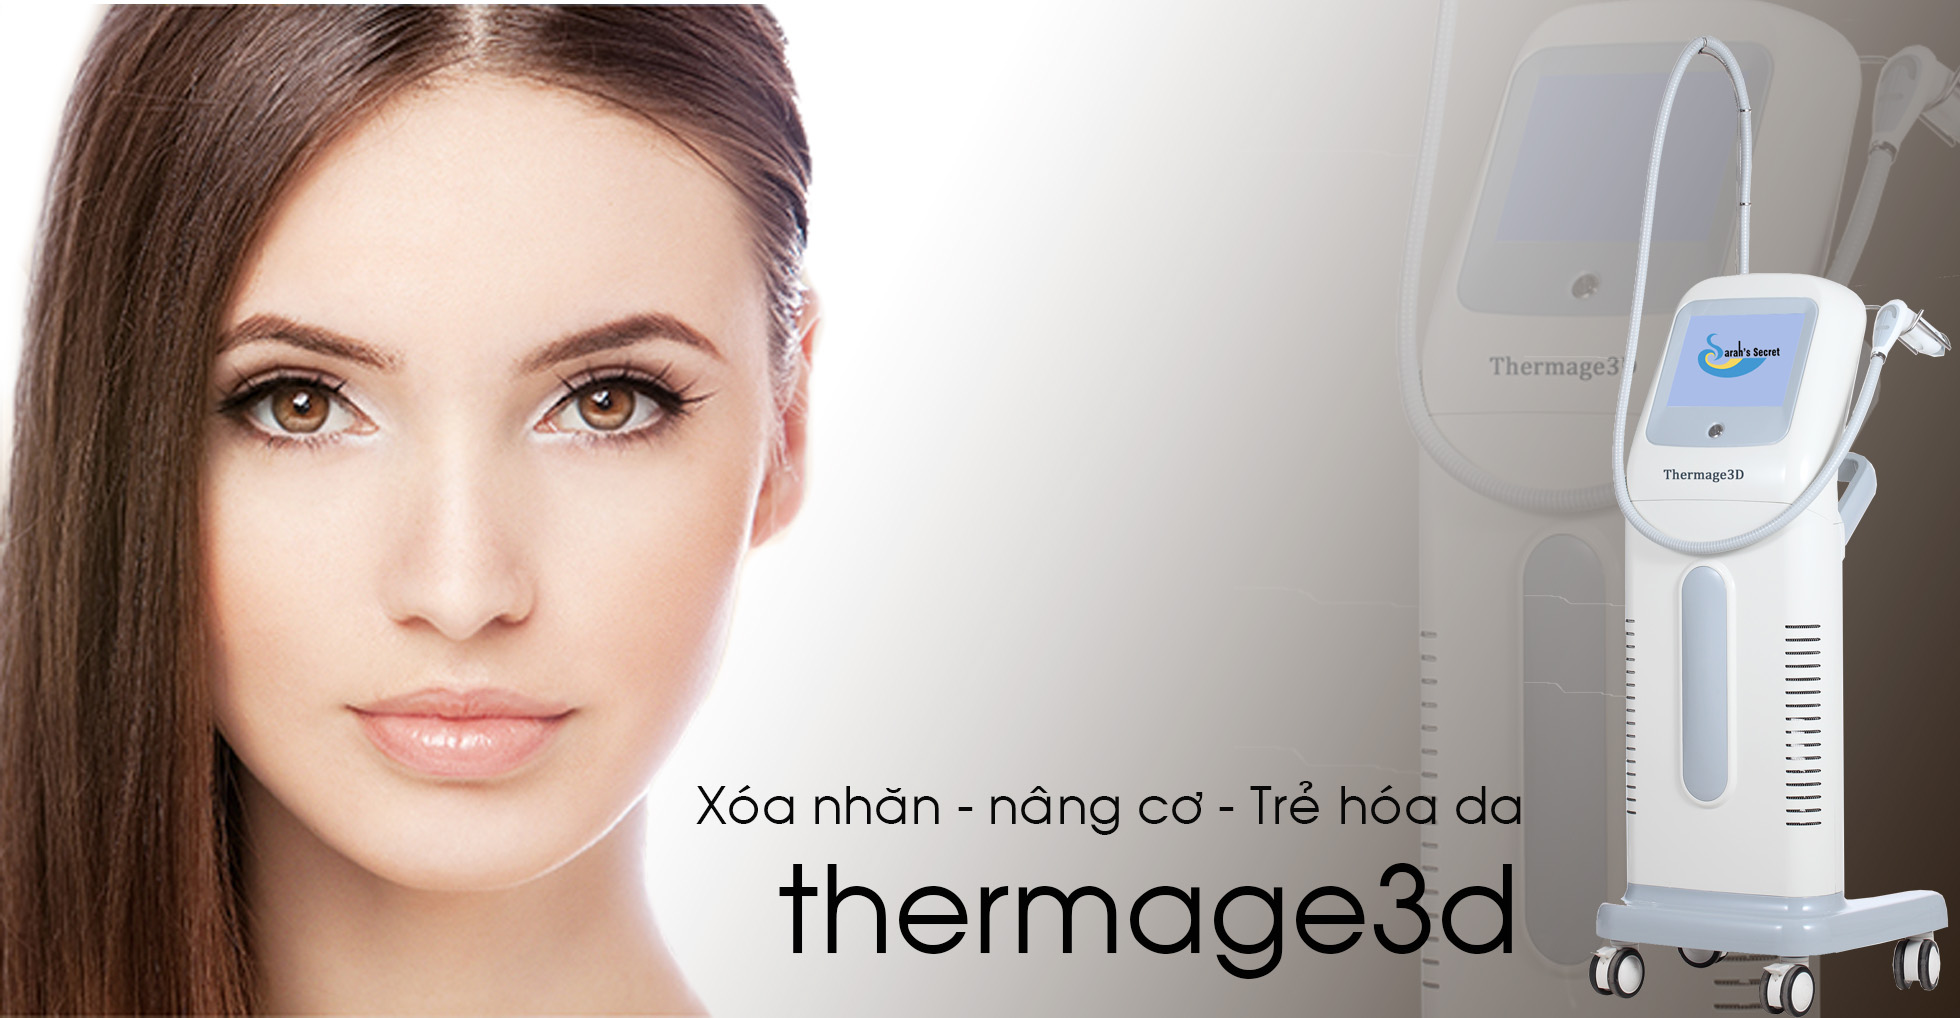 may thermage, may xoa nhan thermage, xoa nhan thermage